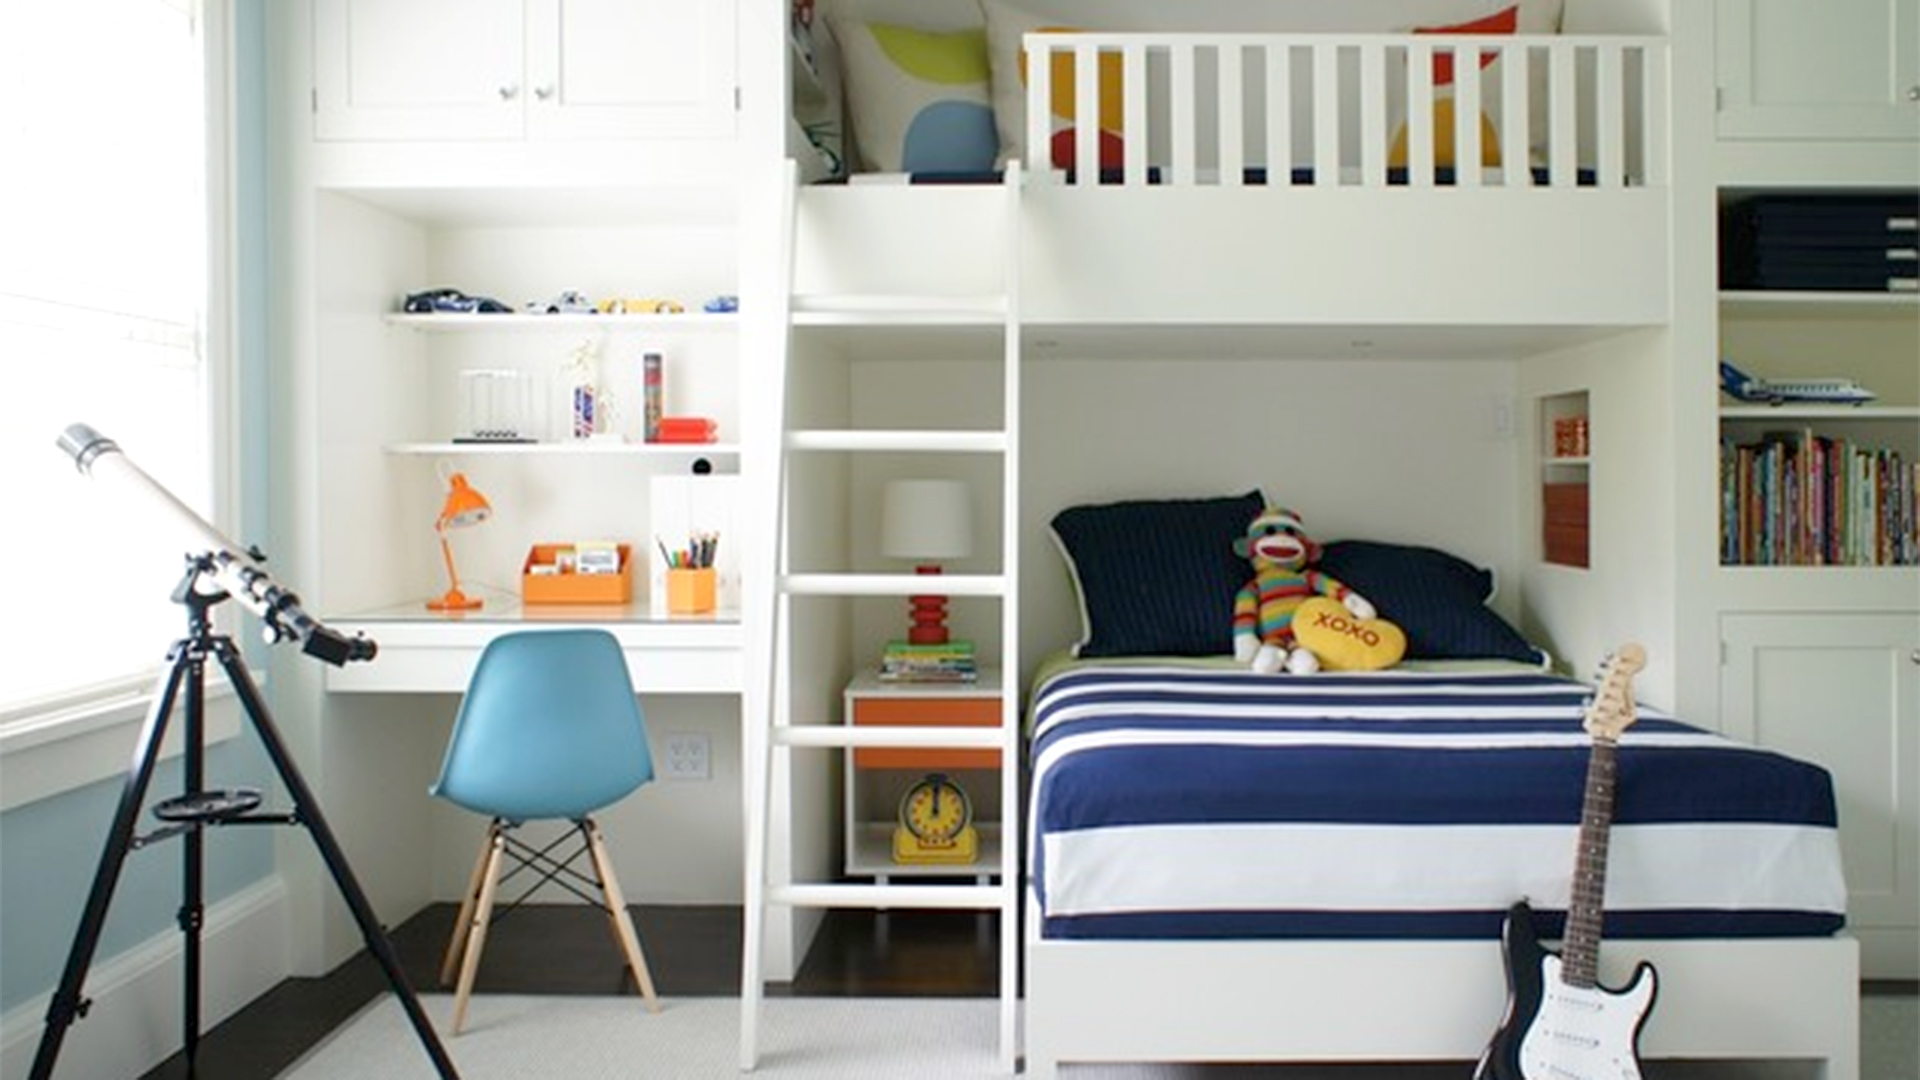 6 Creative builtin ideas for kids rooms  TODAYcom